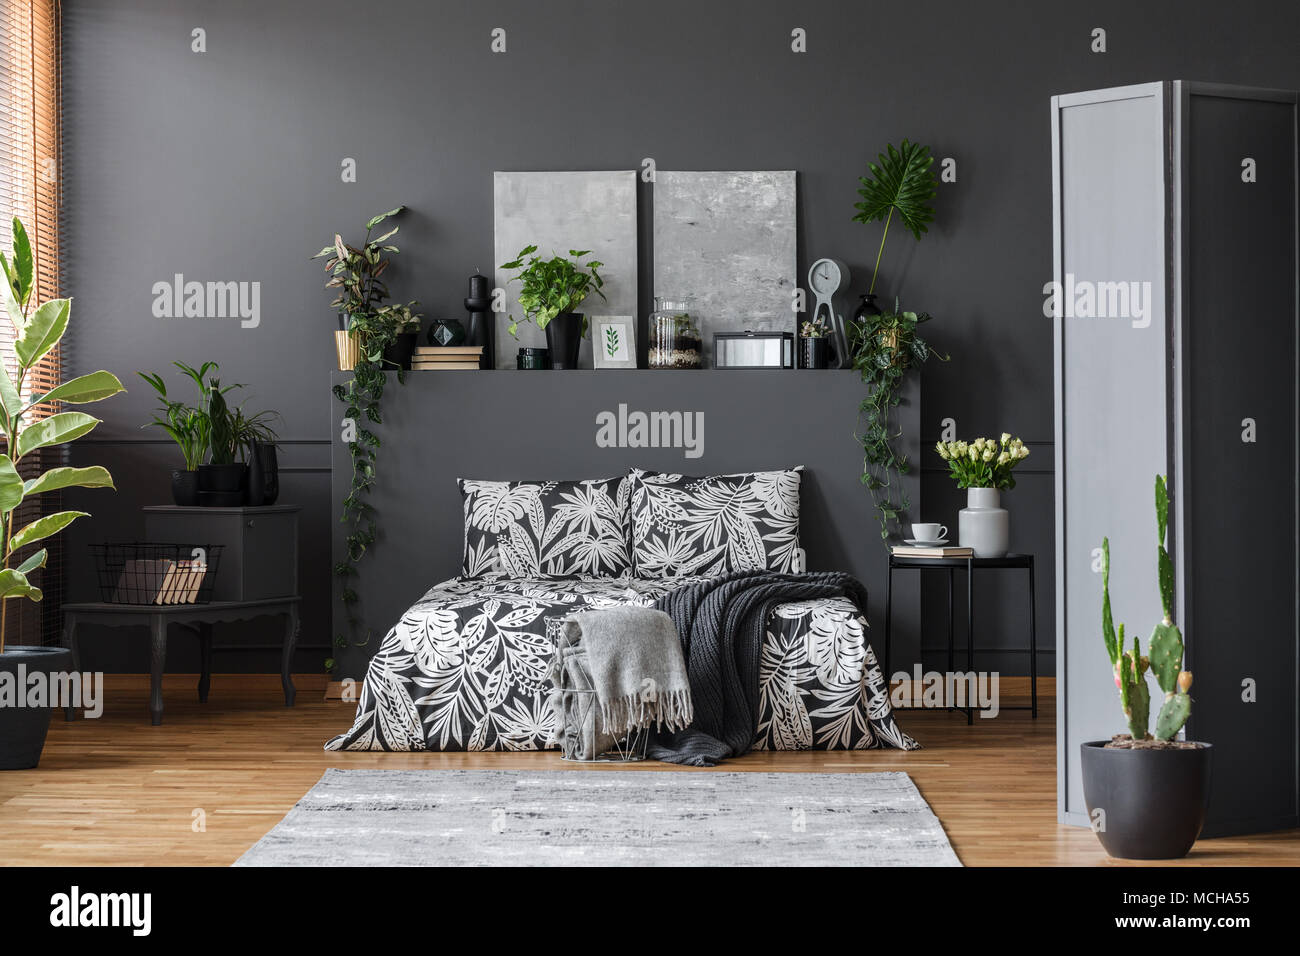 Grey Blanket On Patterned Bed In Floral Bedroom Interior With Plants On  Shelf And Paintings